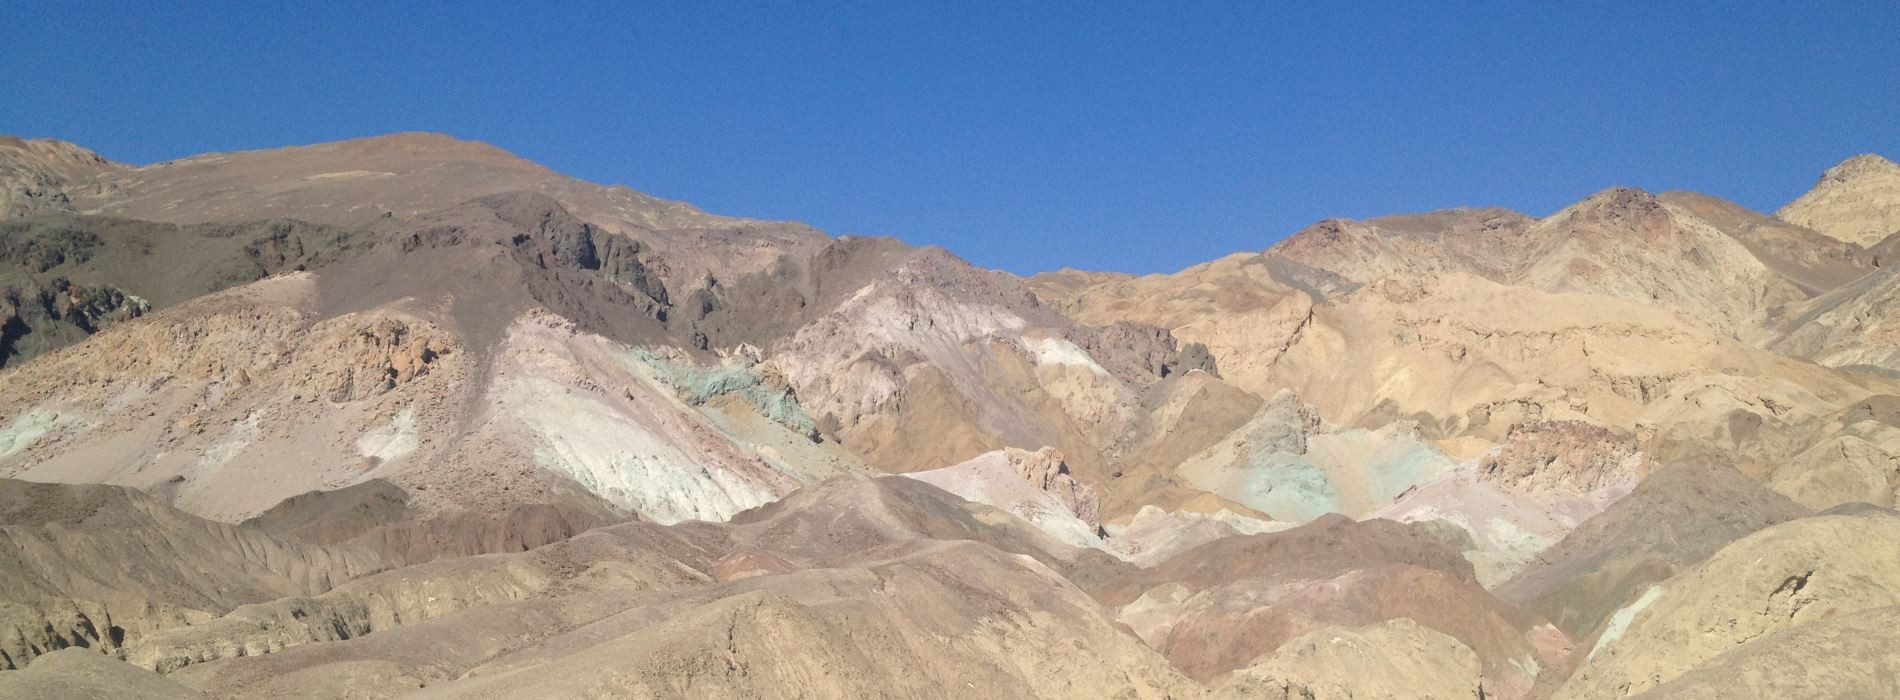 Header-A-Death-Valley-Painted-Hills_1900x700